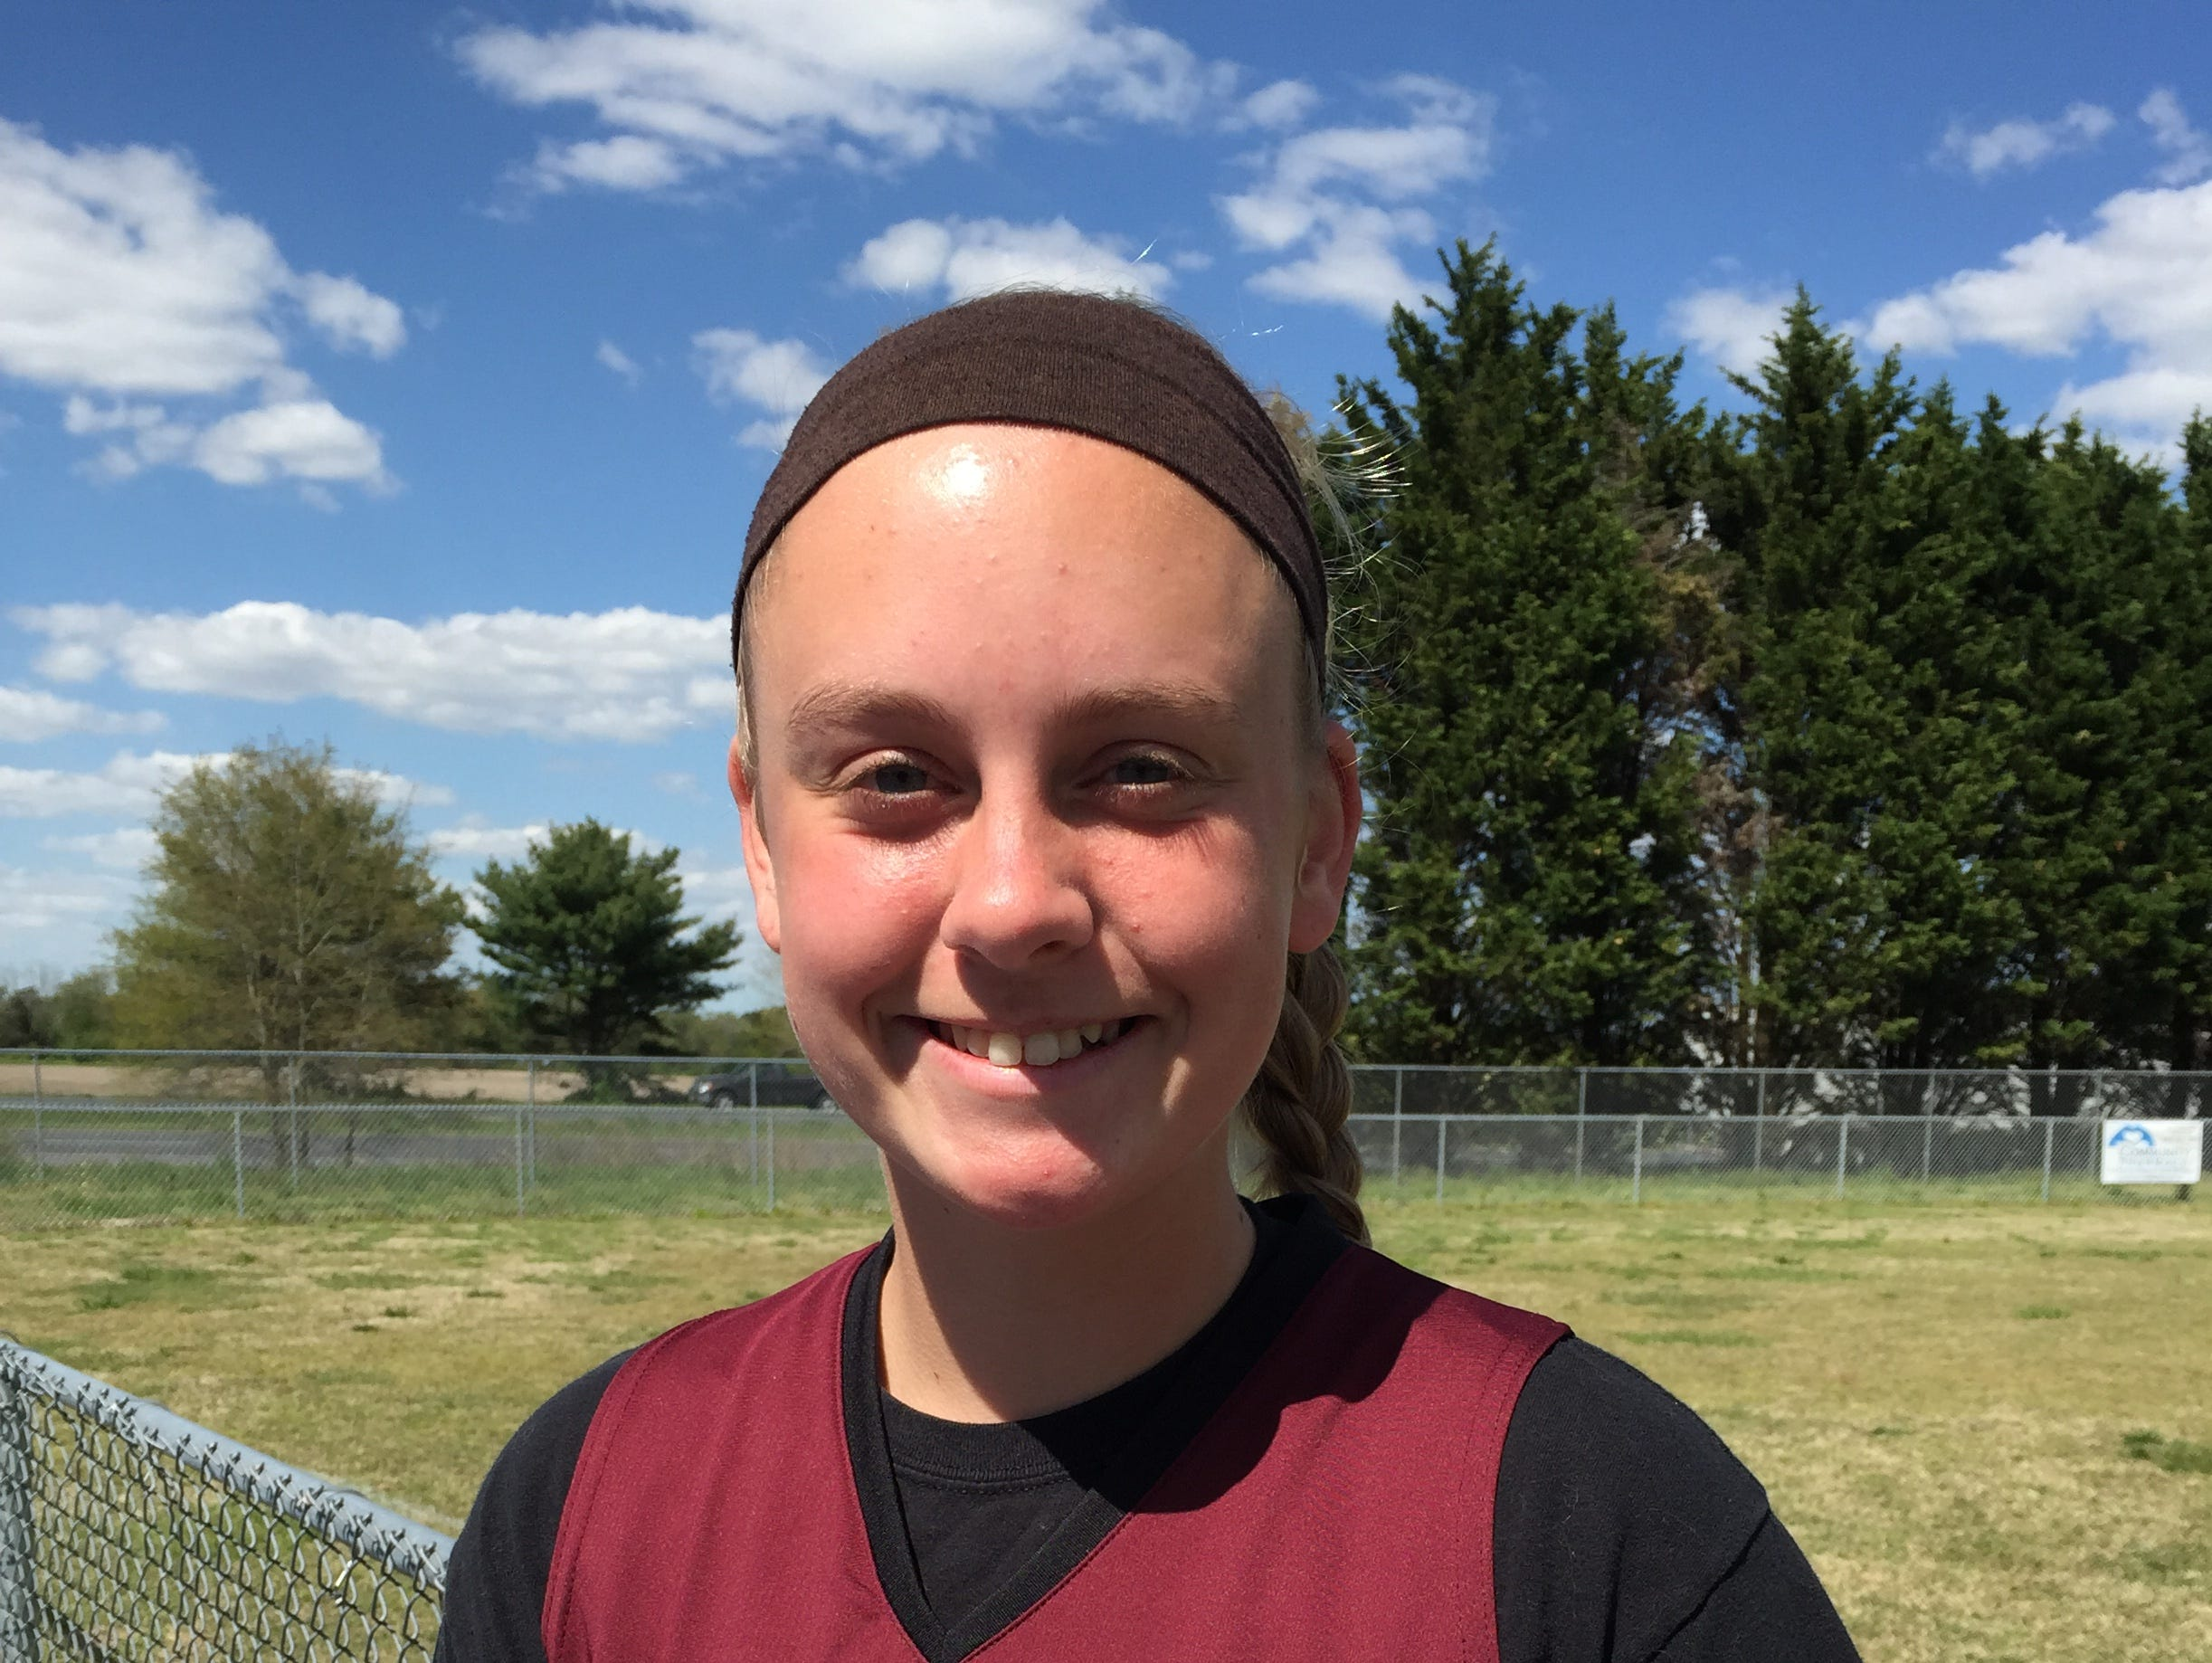 Salisbury Christian's Hailey Farlow earned two win in the pitcher's circle for the Jaguars. She also threw a no-hitter.